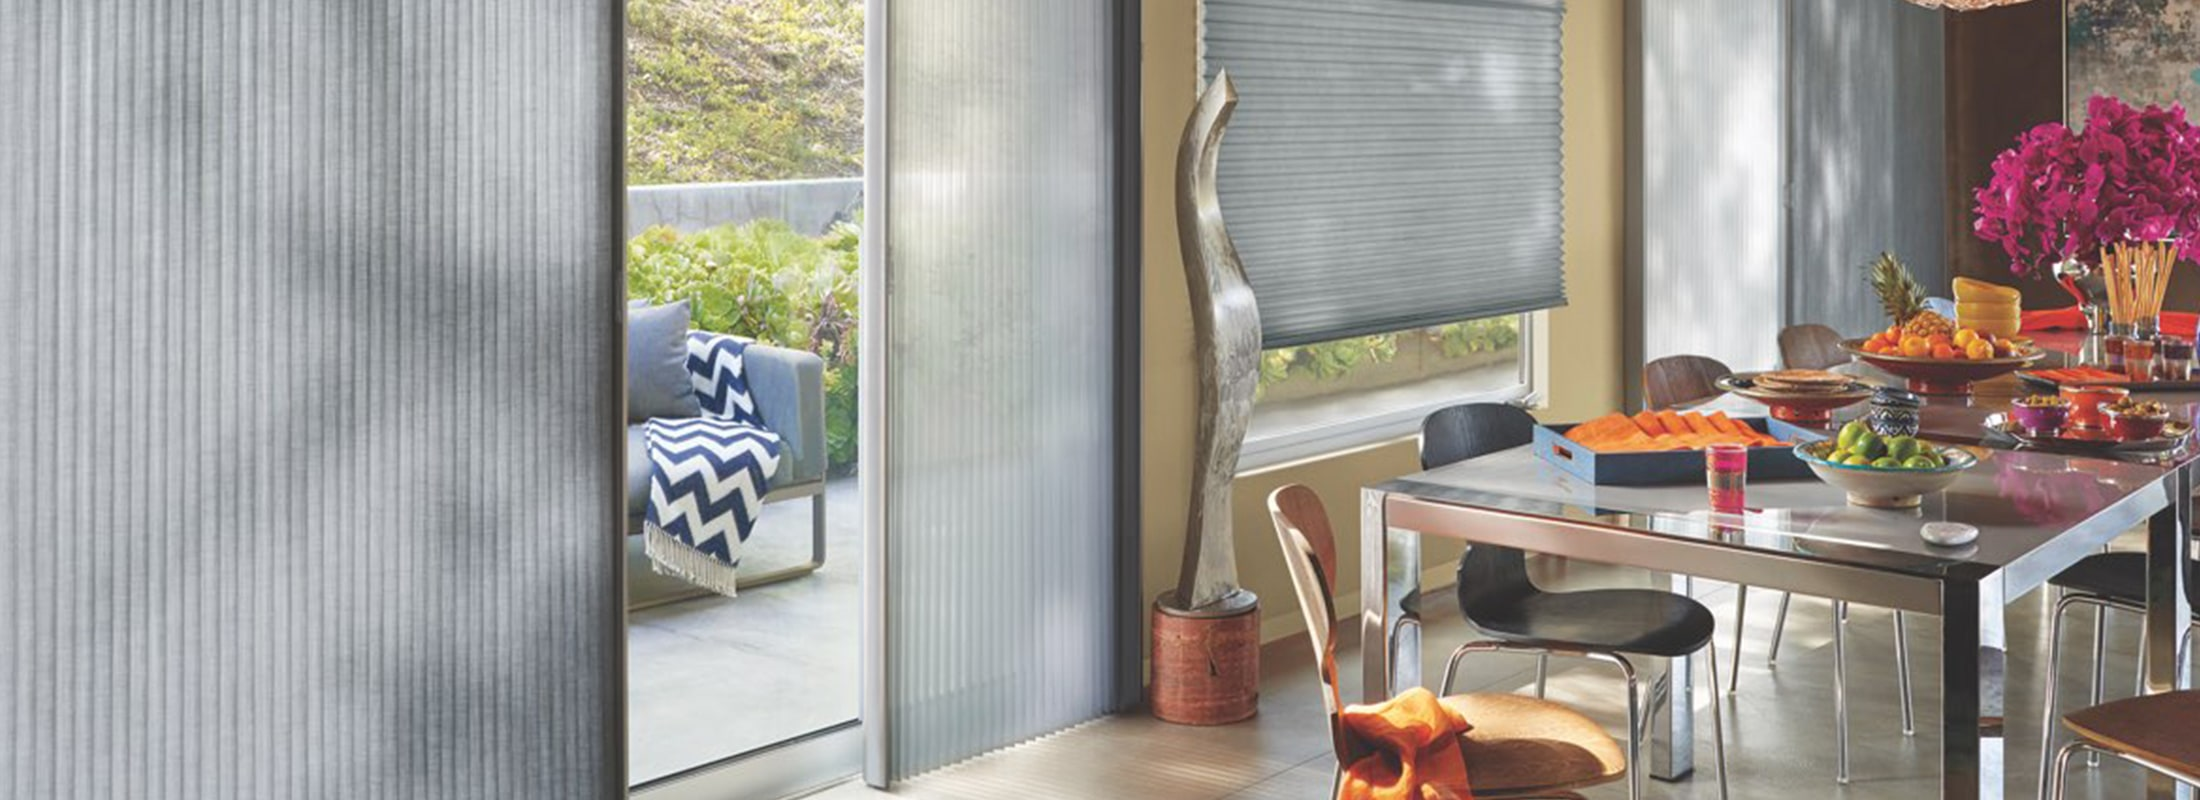 Vertical Shade Operating System Slider Shades Vertiglide - Hunter douglas blinds for patio doors